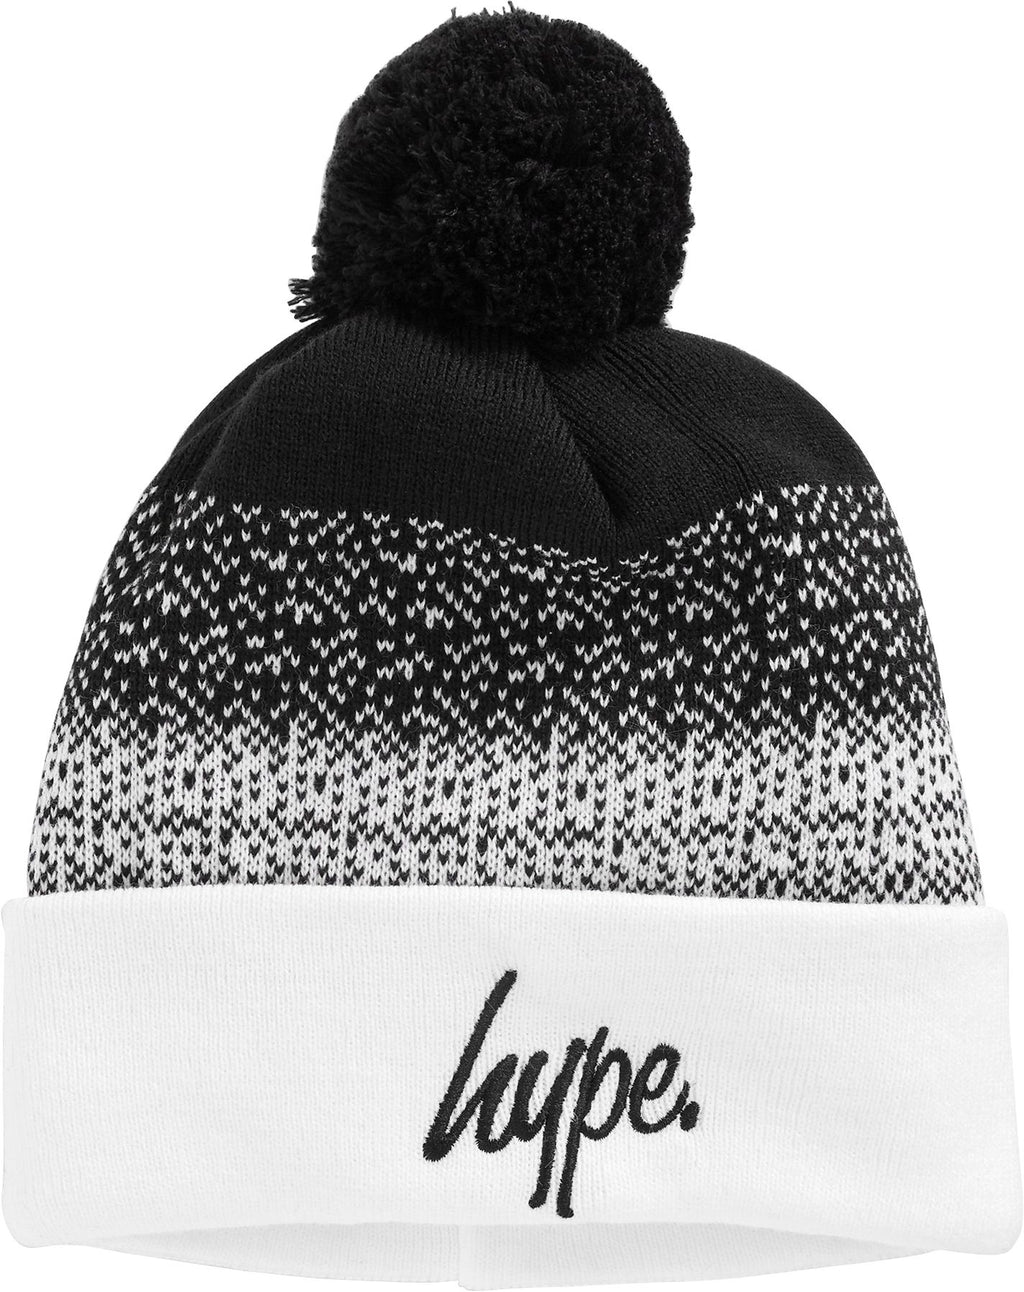 Hype-Speckle-Fade-Script-Bobble-Beanie-Hat-Black-White